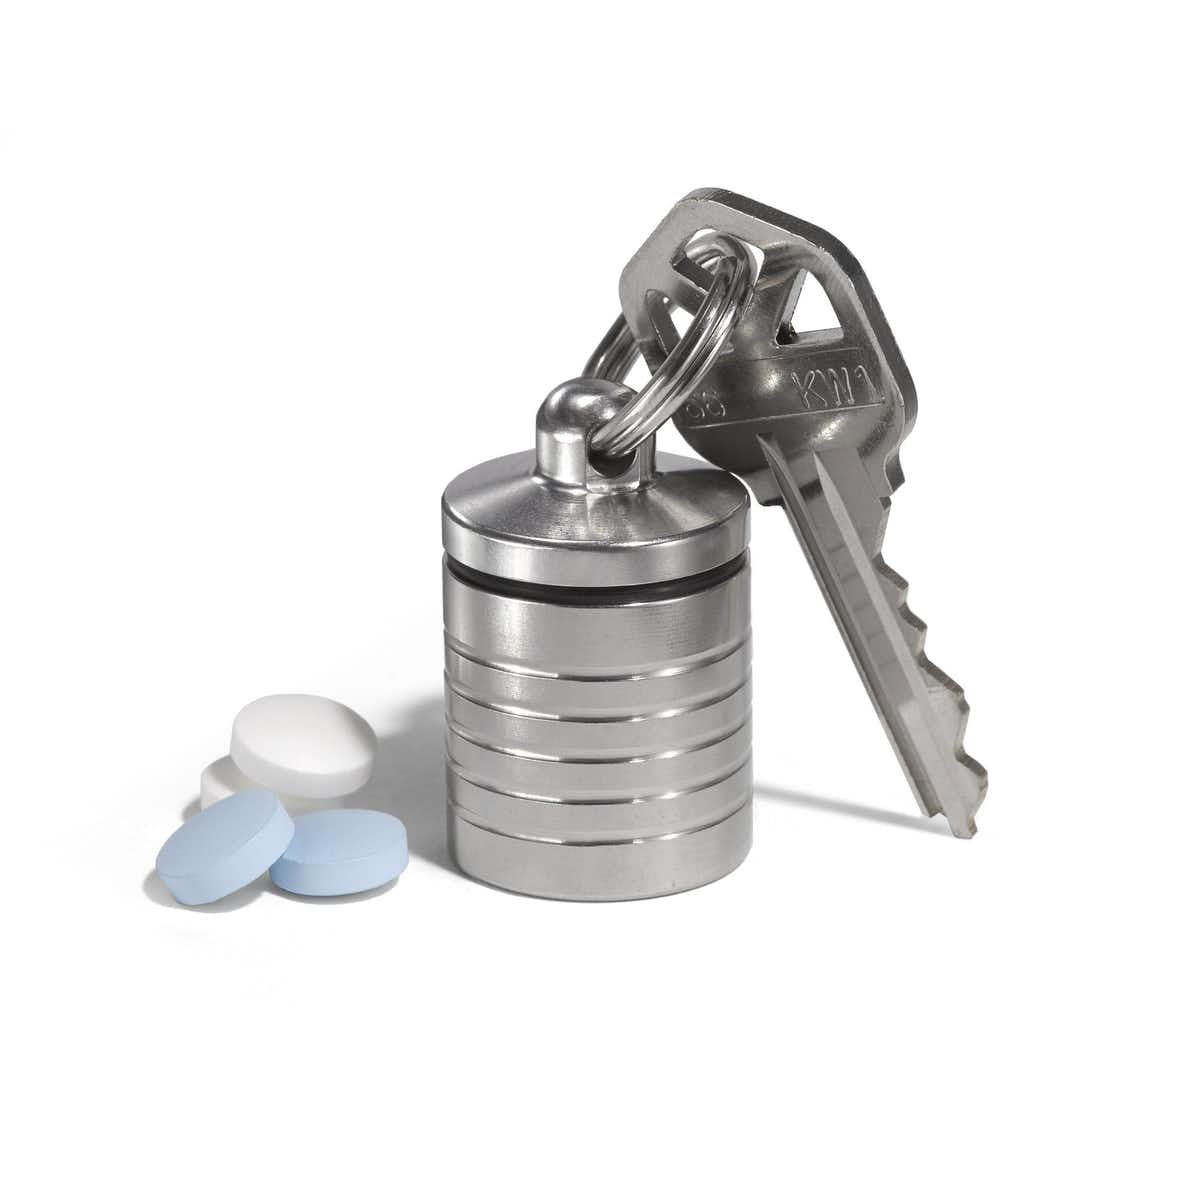 Wide Compact Single Chamber Pill Holder in Stainless Steel